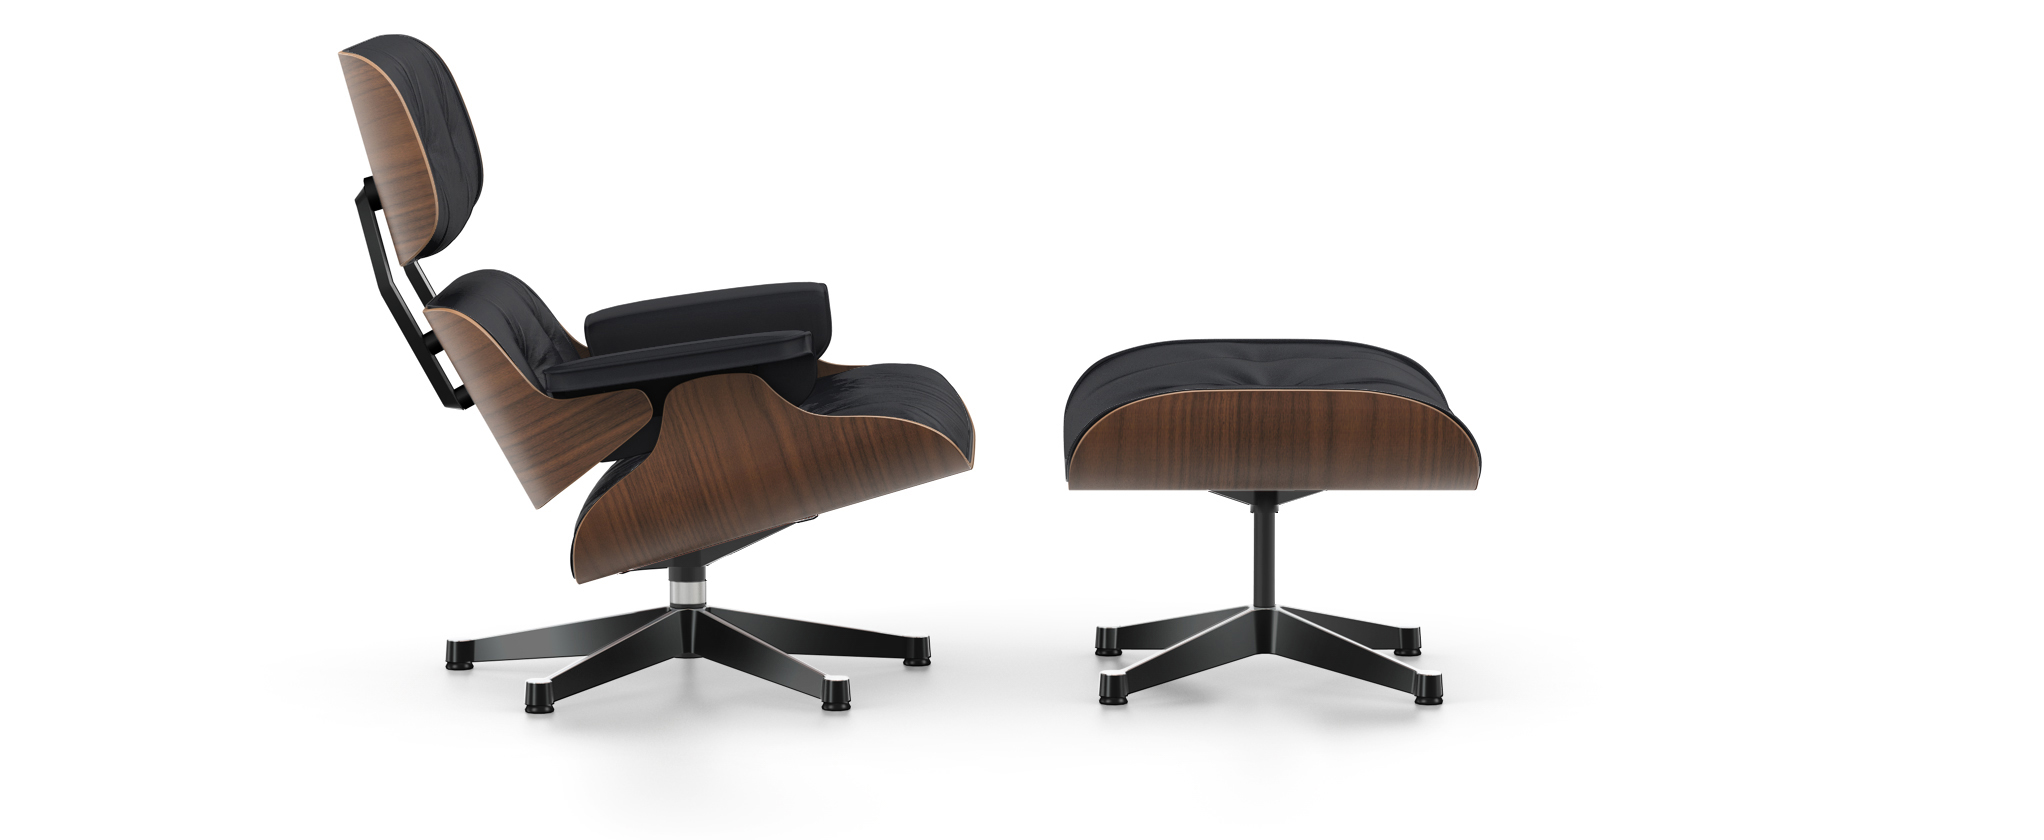 eames lounge chairs kaufen vitrapoint d sseldorf. Black Bedroom Furniture Sets. Home Design Ideas